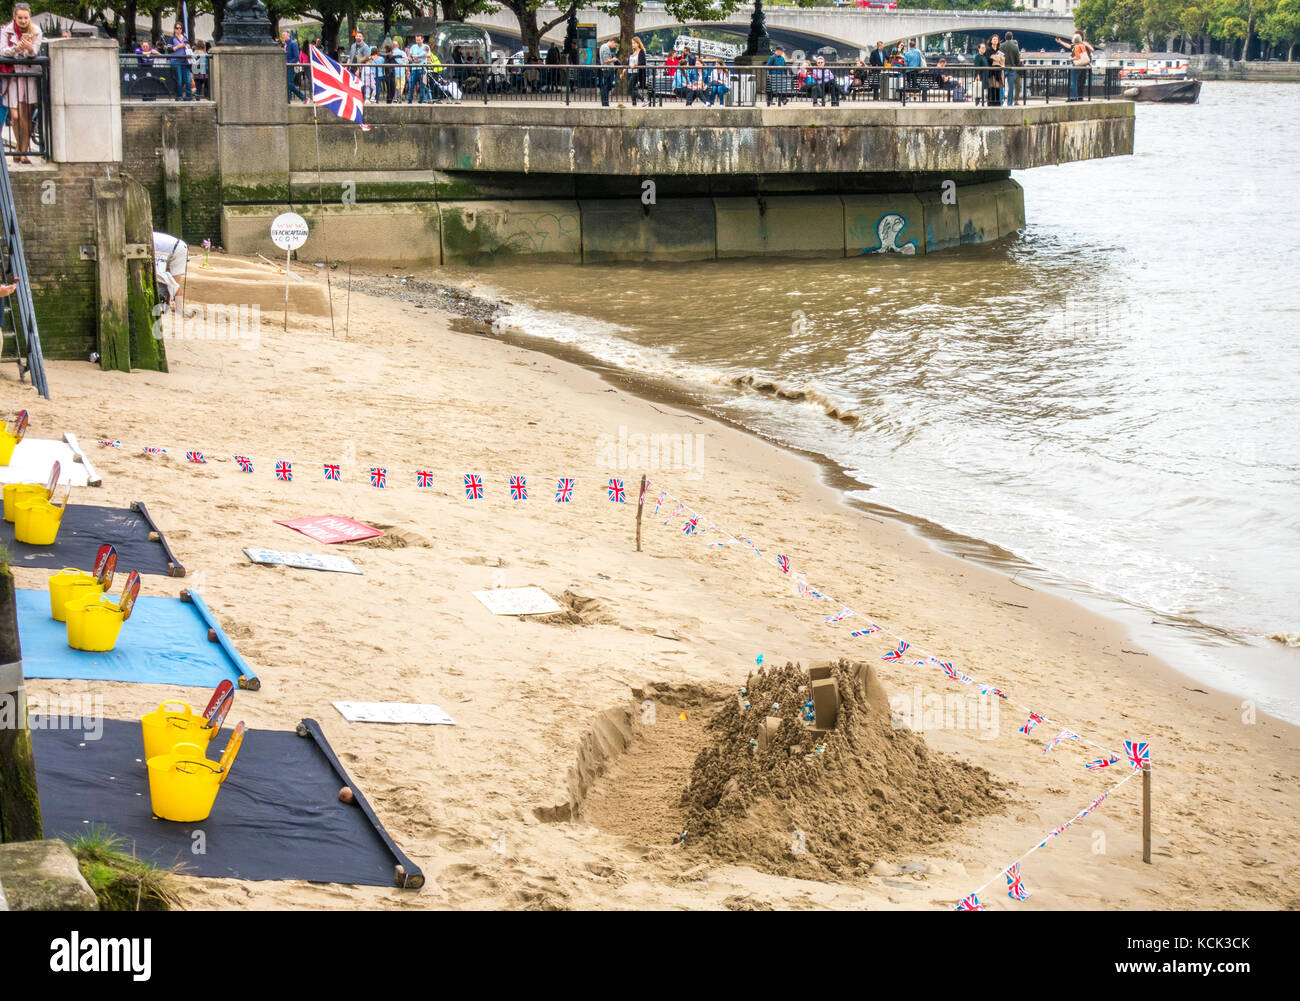 Sandcastle sculpture, with the sculptor seeking donations, on an urban beach next to a busy South Bank of the River - Stock Image